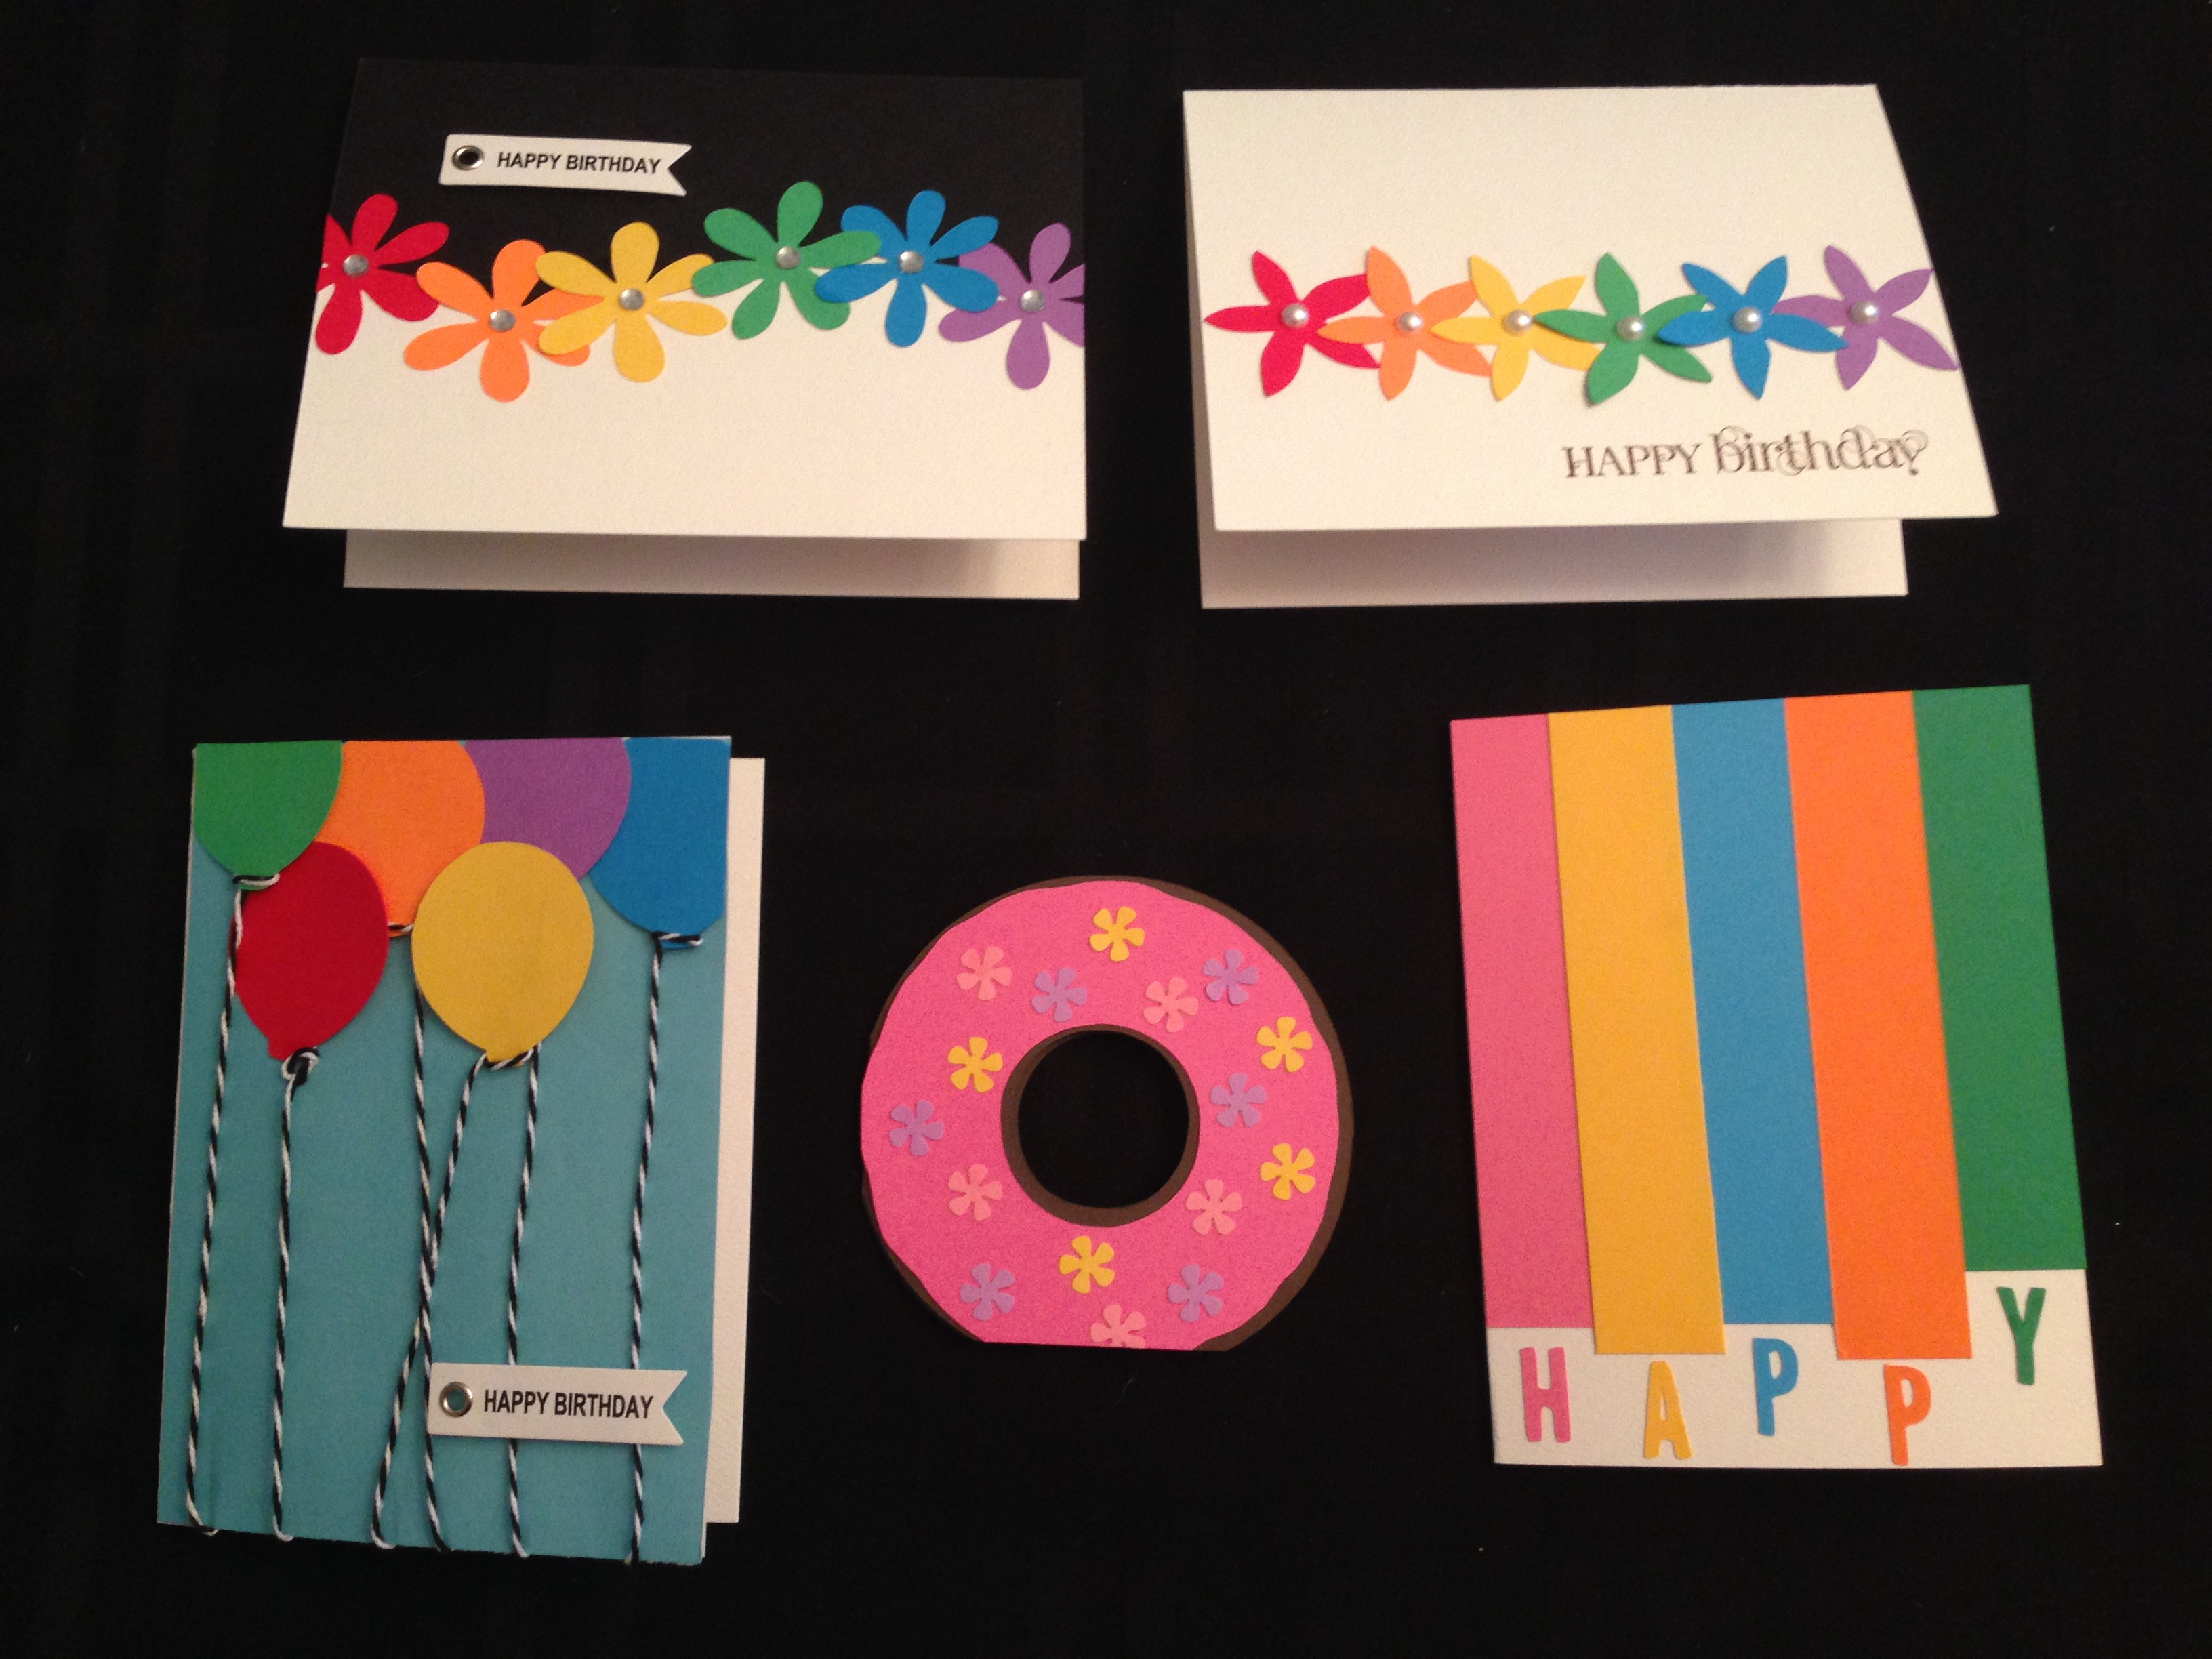 Wonderful Pinterest Card Making Ideas Part - 11: IMG_4121